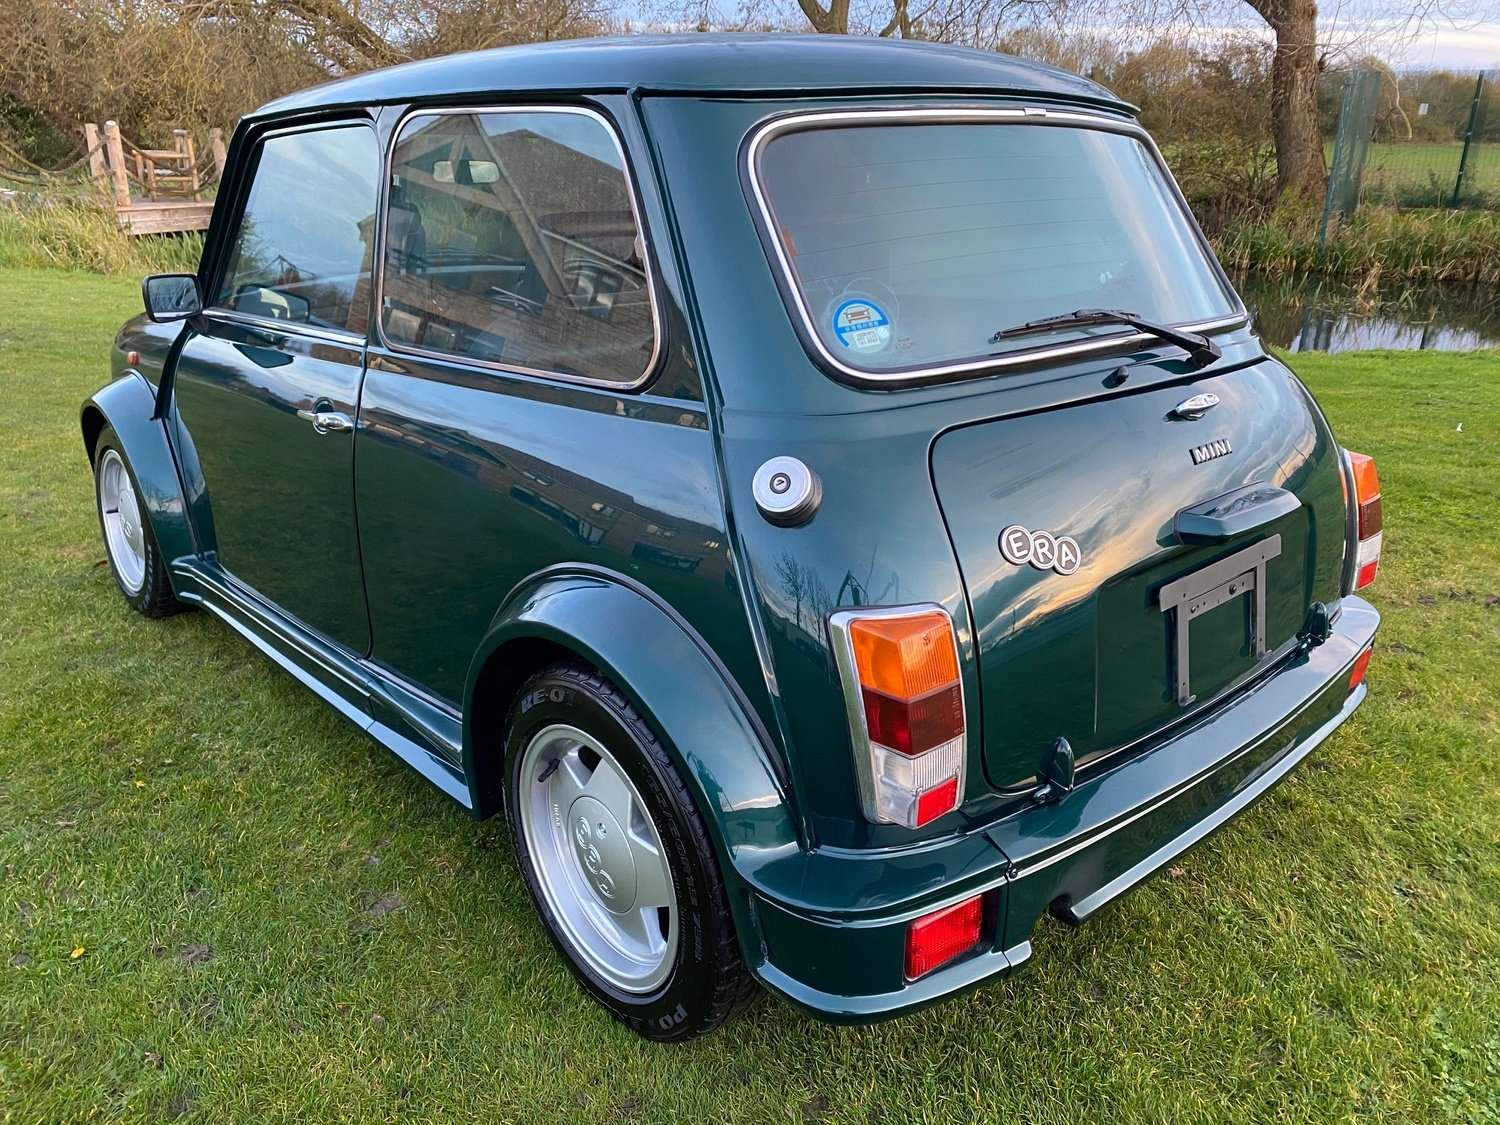 1992 ROVER MINI ERA TURBO VERY RARE VEHICLE * ONE OF ONLY 436 * For Sale (picture 2 of 6)